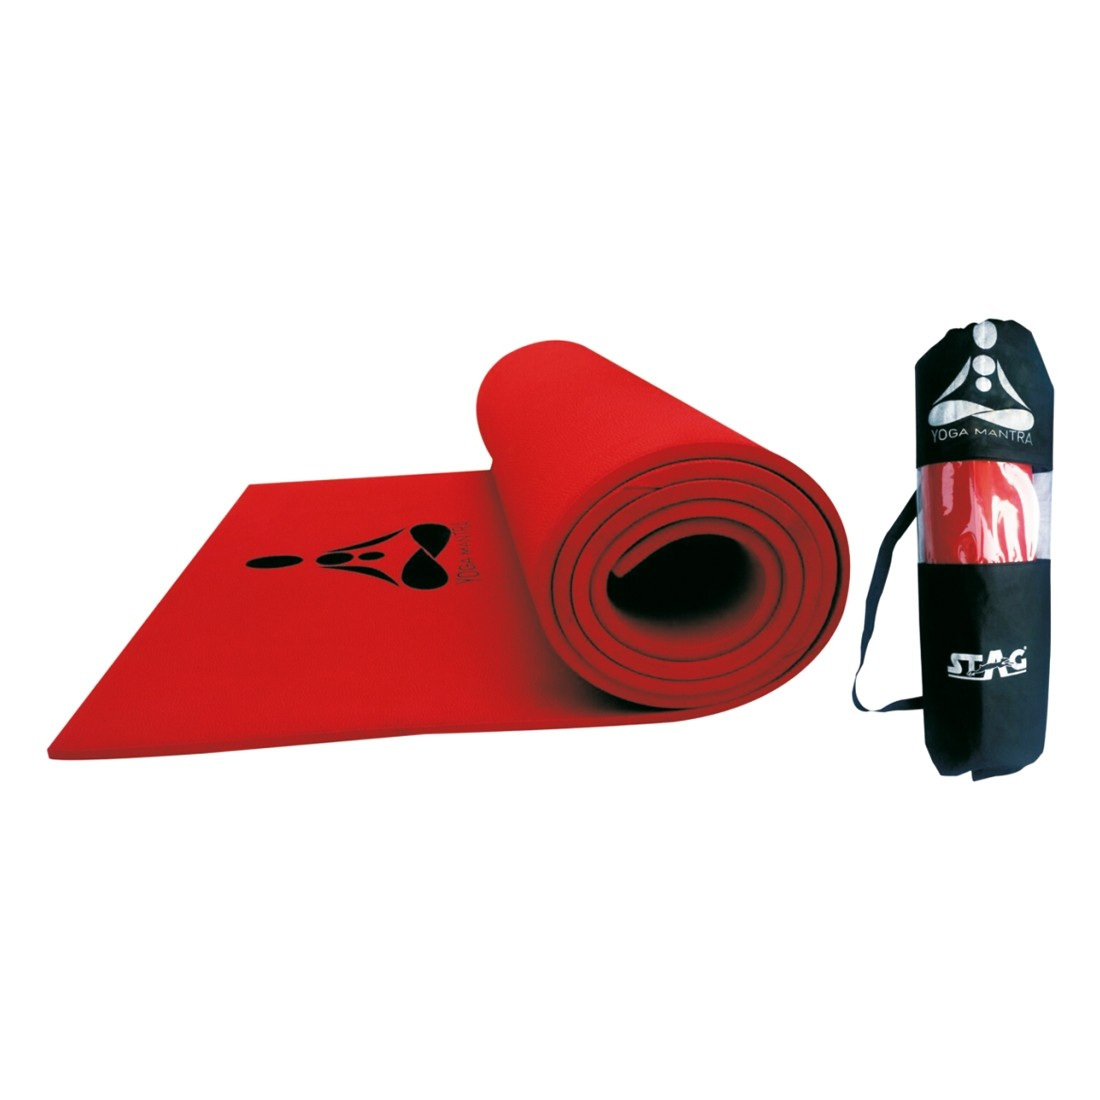 YOGA MANTRA BLACK/SILVERMAT 8 mm with bag